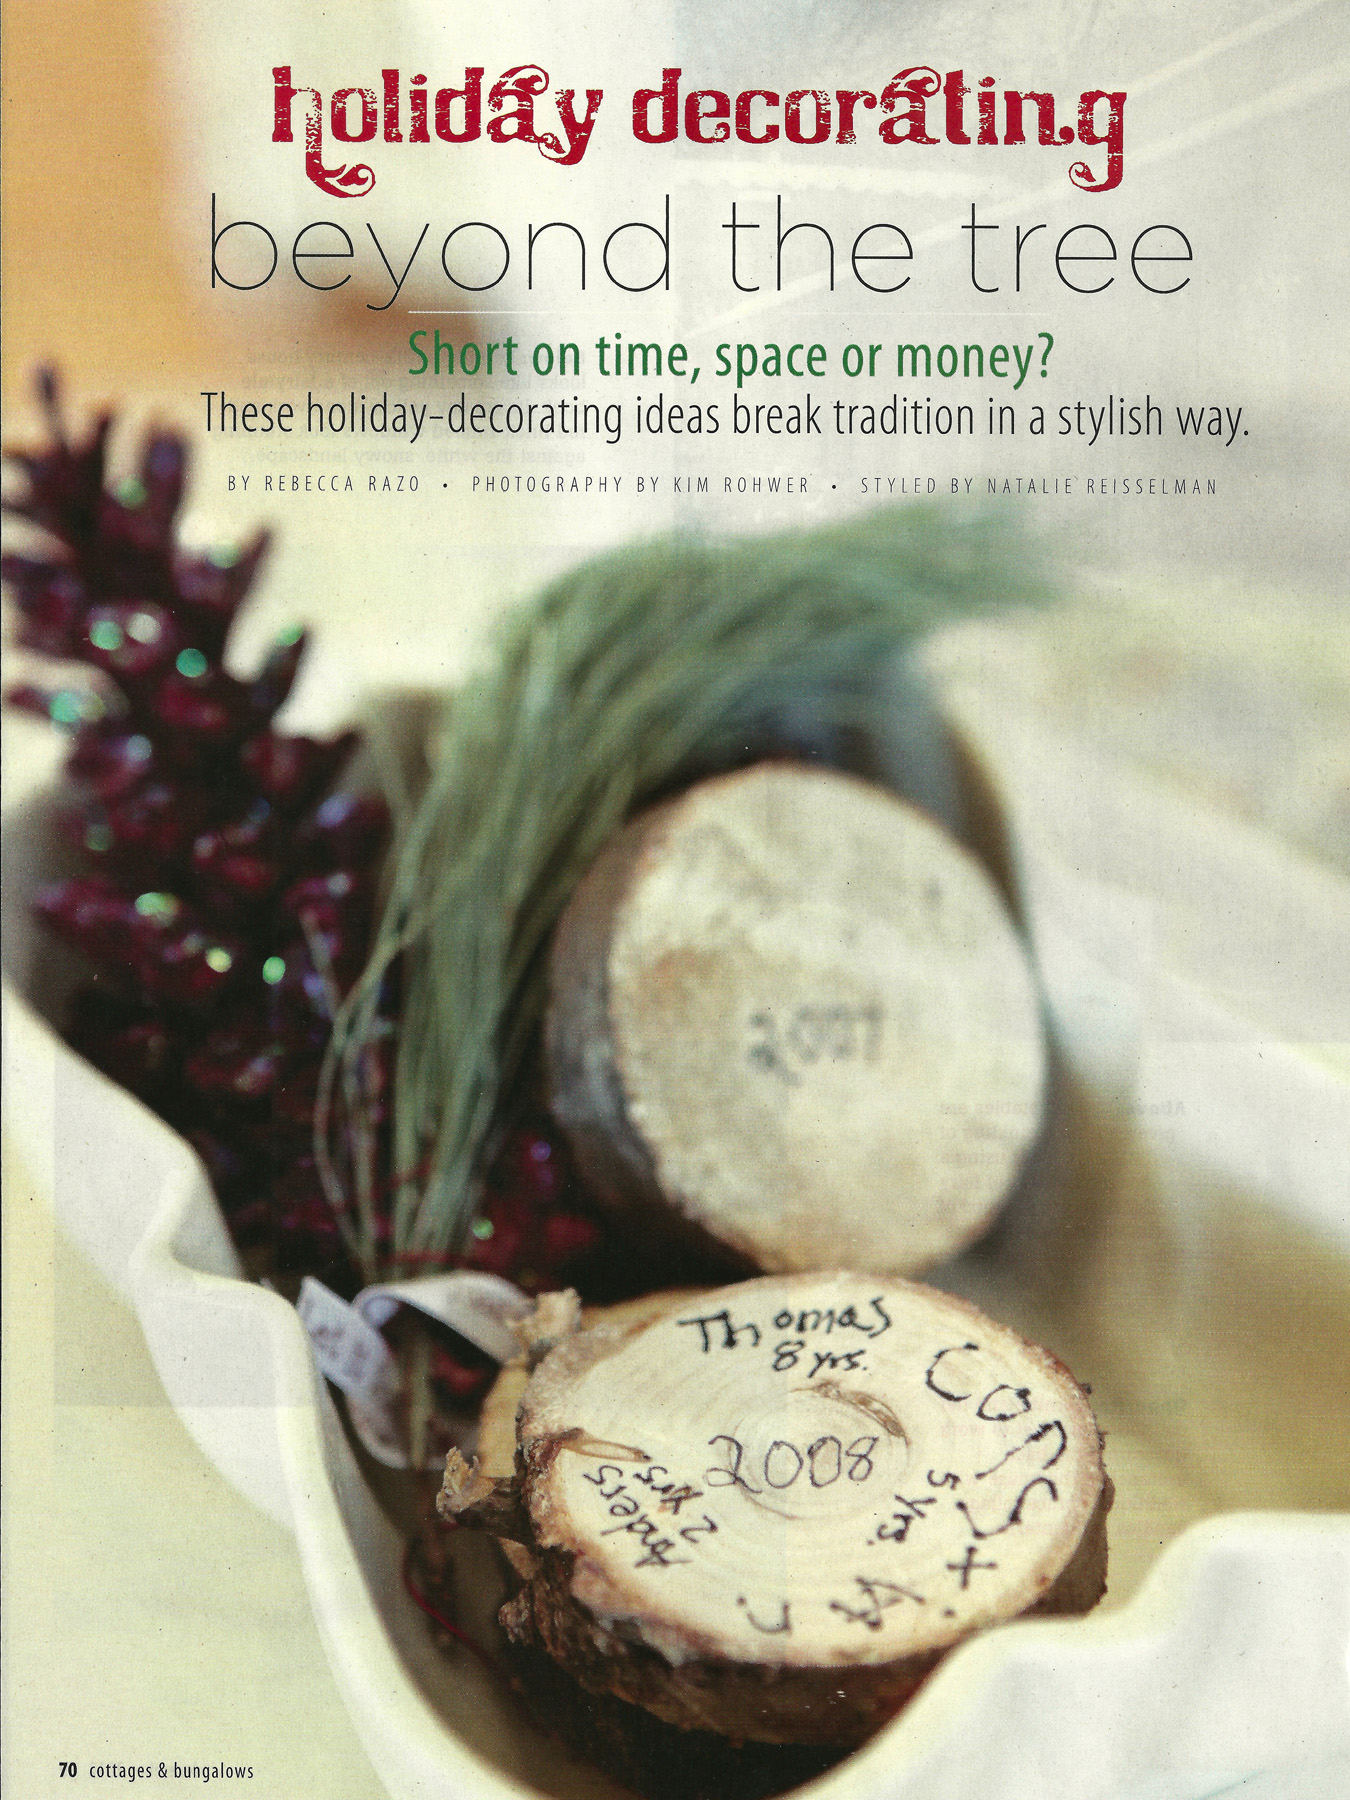 Cottages & Bungalows December 2012 Pg70